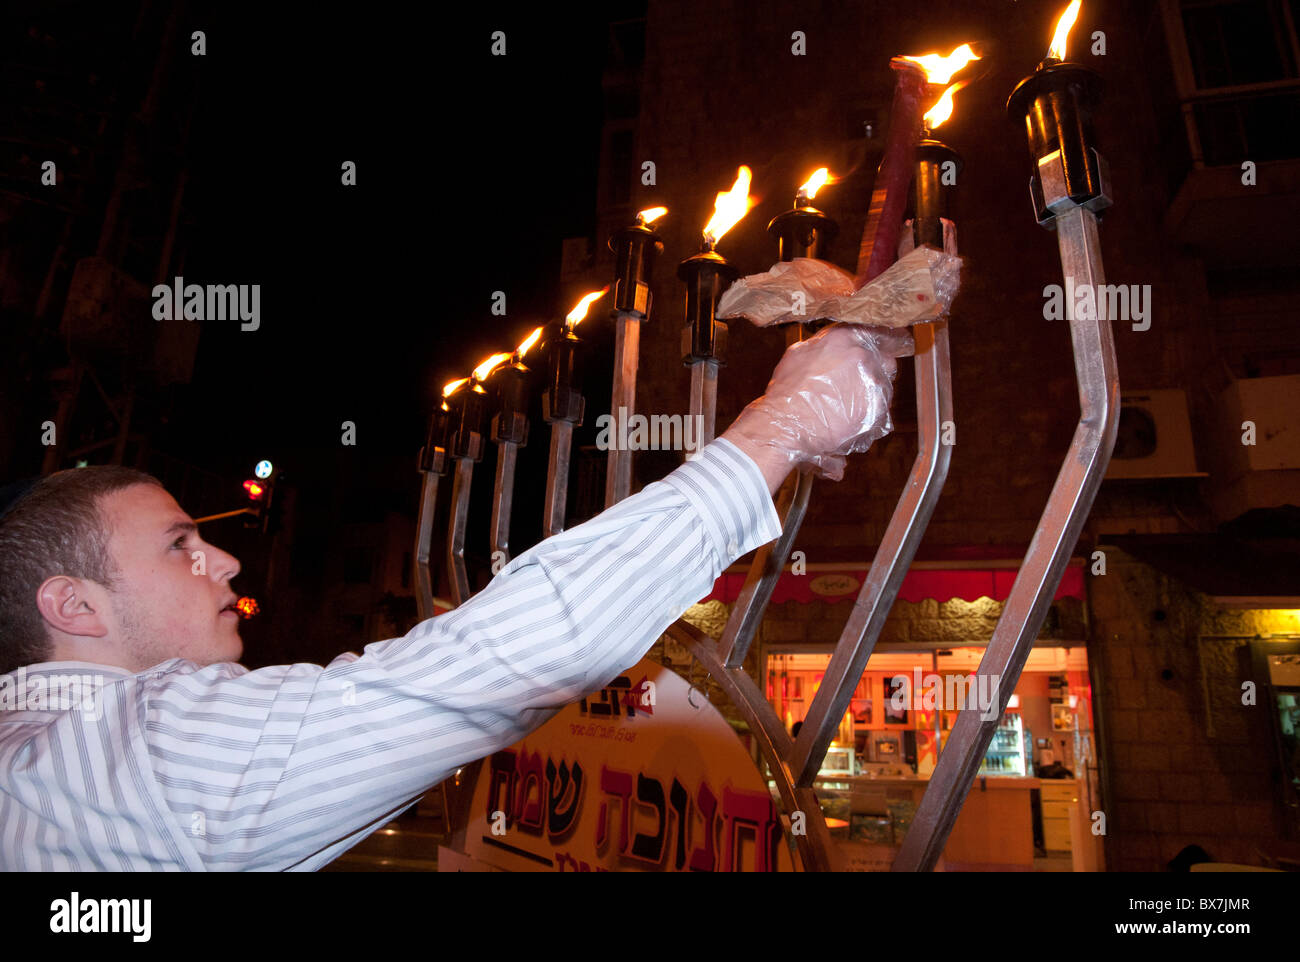 Lubavitch jews lighting a street hanukiah during the Jewish Hanukah festival. Jerusalem. israel - Stock Image